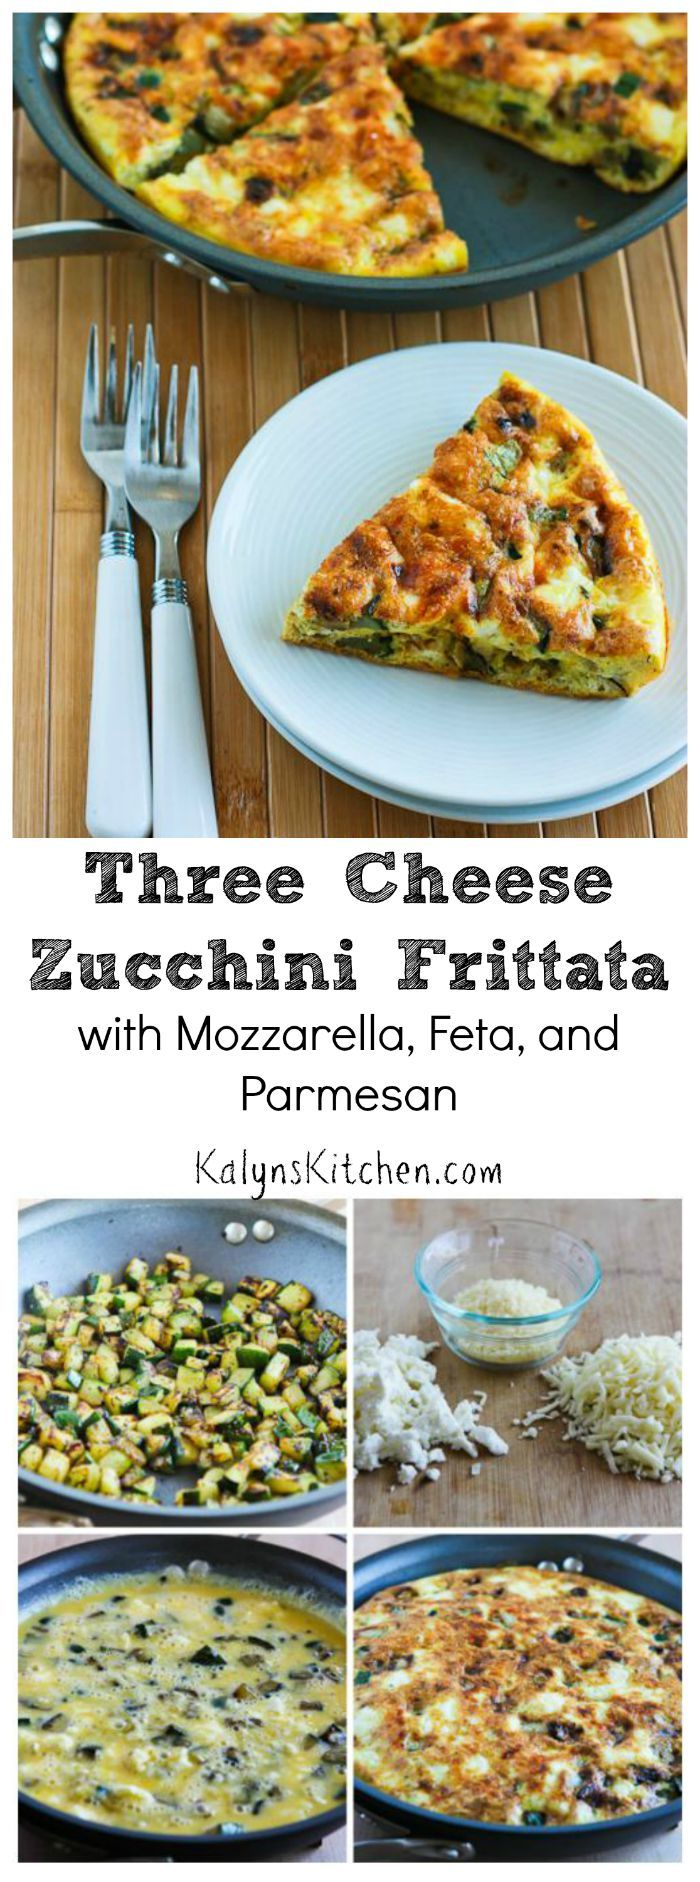 This easy and delicious Three Cheese Zucchini Frittata is a great way to use up some of those giant zucchini that show up in the fall! [from KalynsKitchen.com]